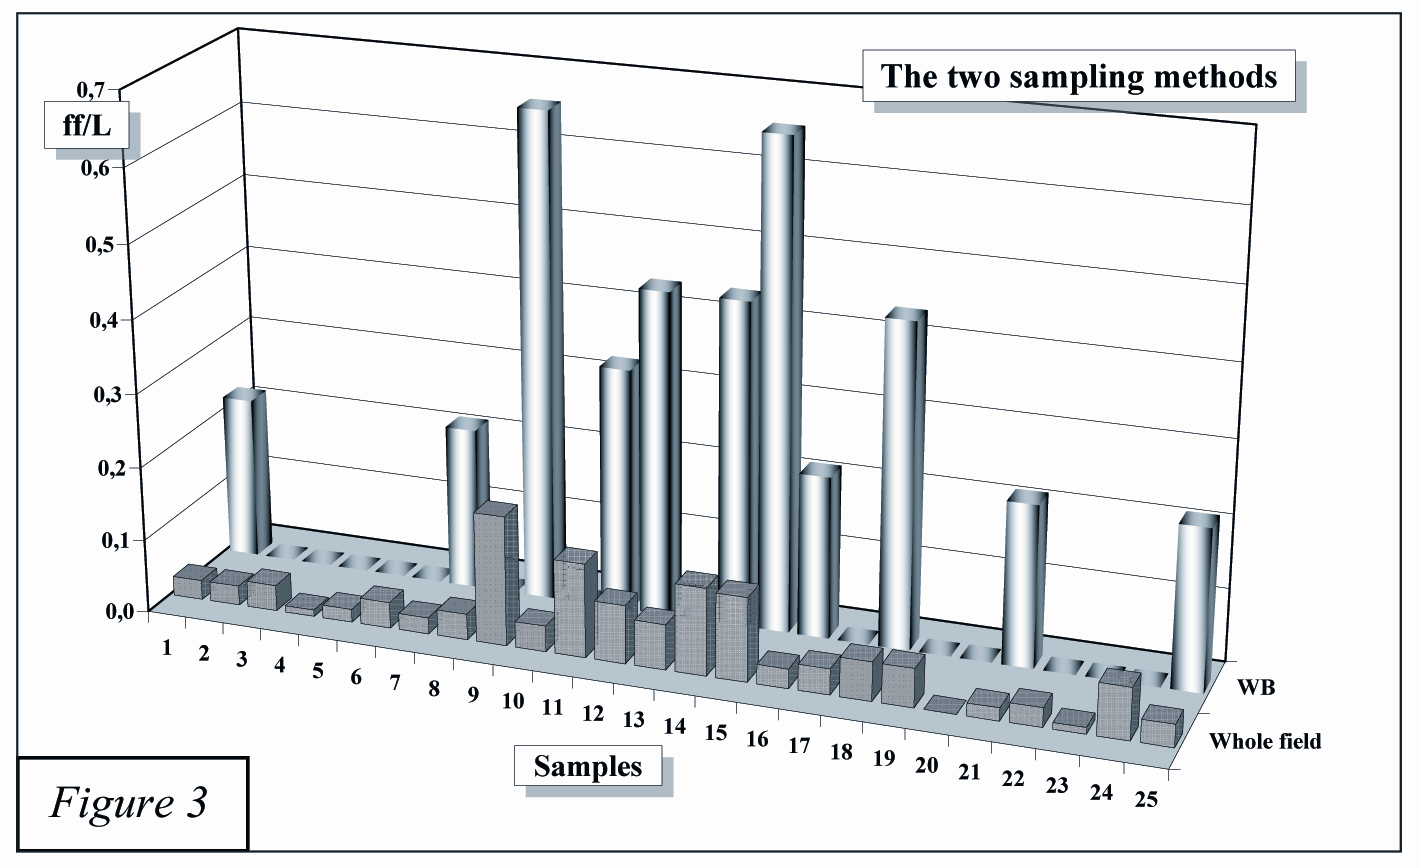 In our case, the histogram of concentrations obtained from 25 samplings with the two different counting methods (Fig. 3) shows a big difference.